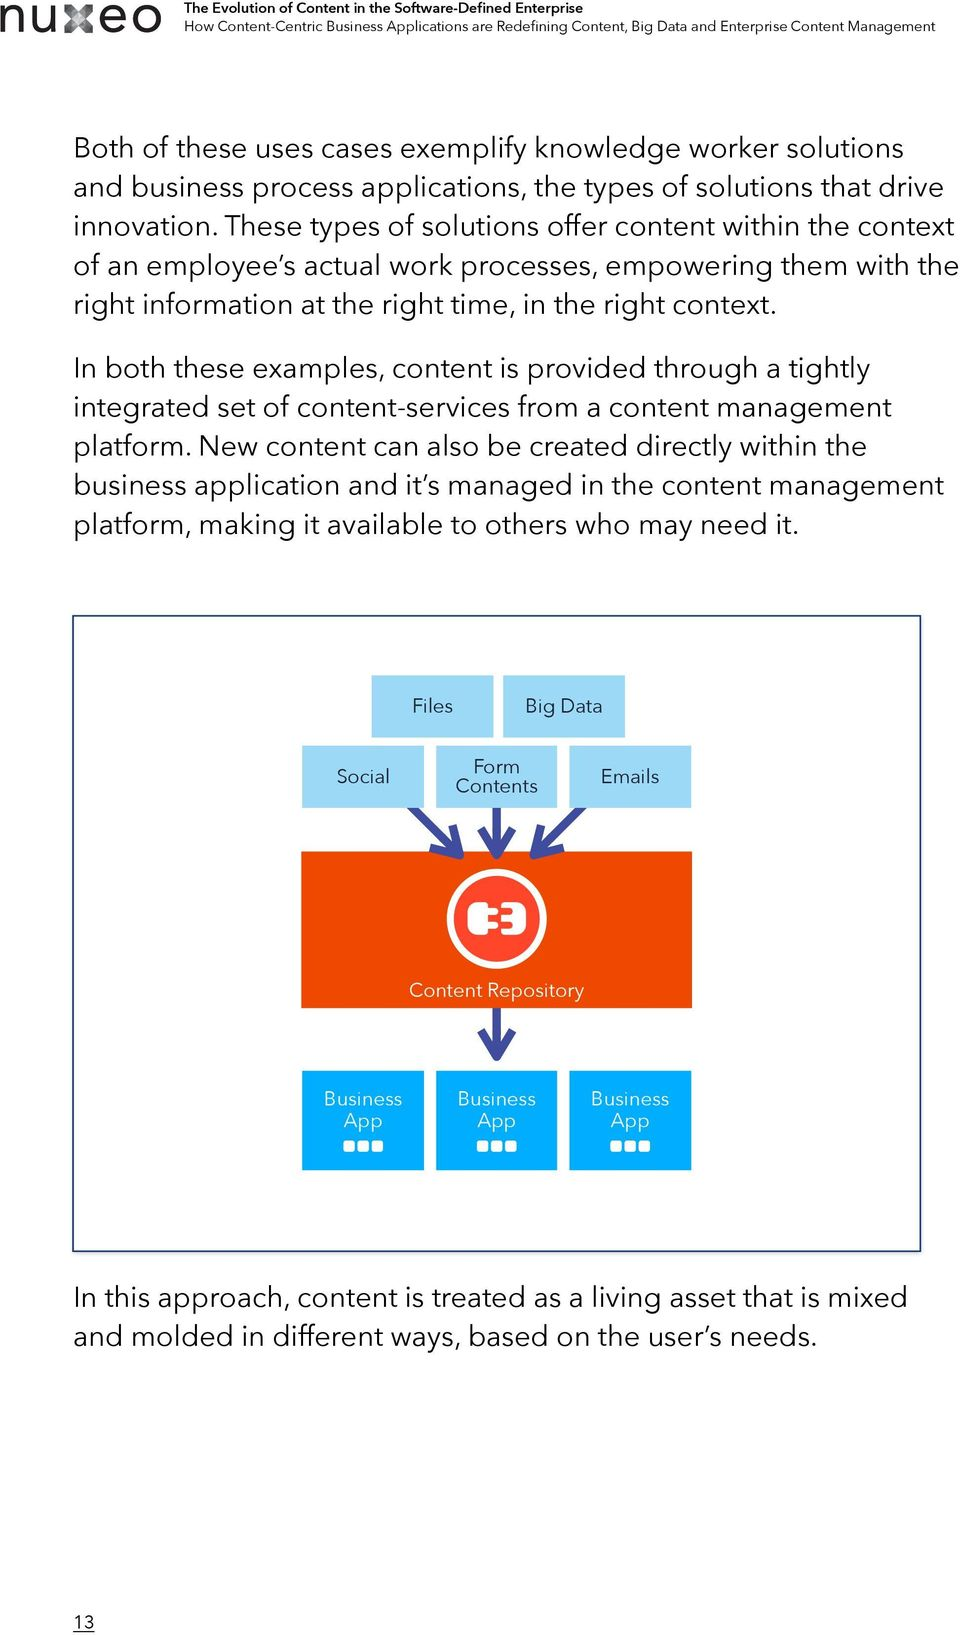 In both these examples, content is provided through a tightly integrated set of content-services from a content management platform.